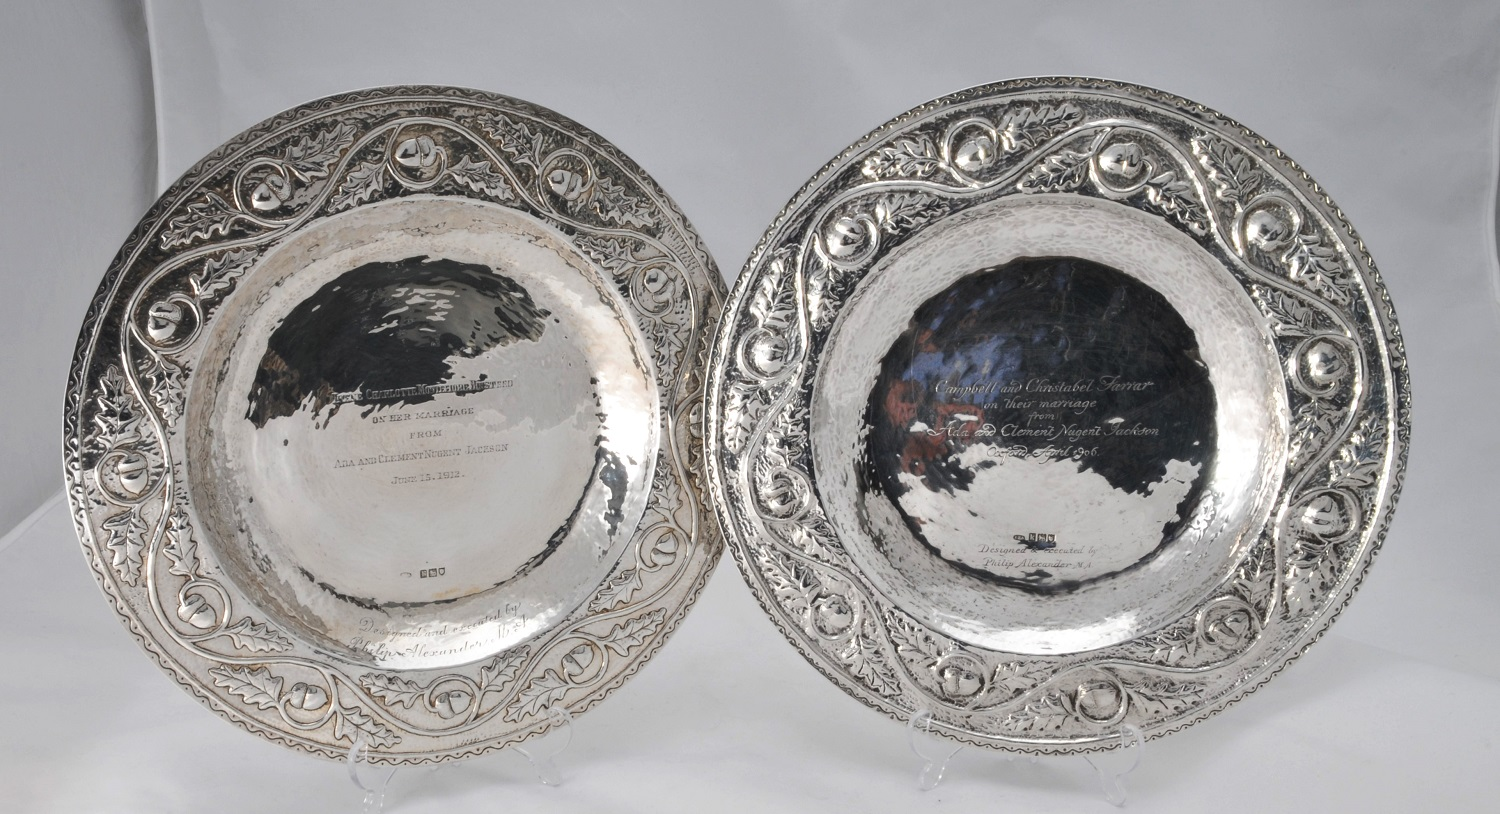 Frederick Philip Alexander arts and craft silver plates